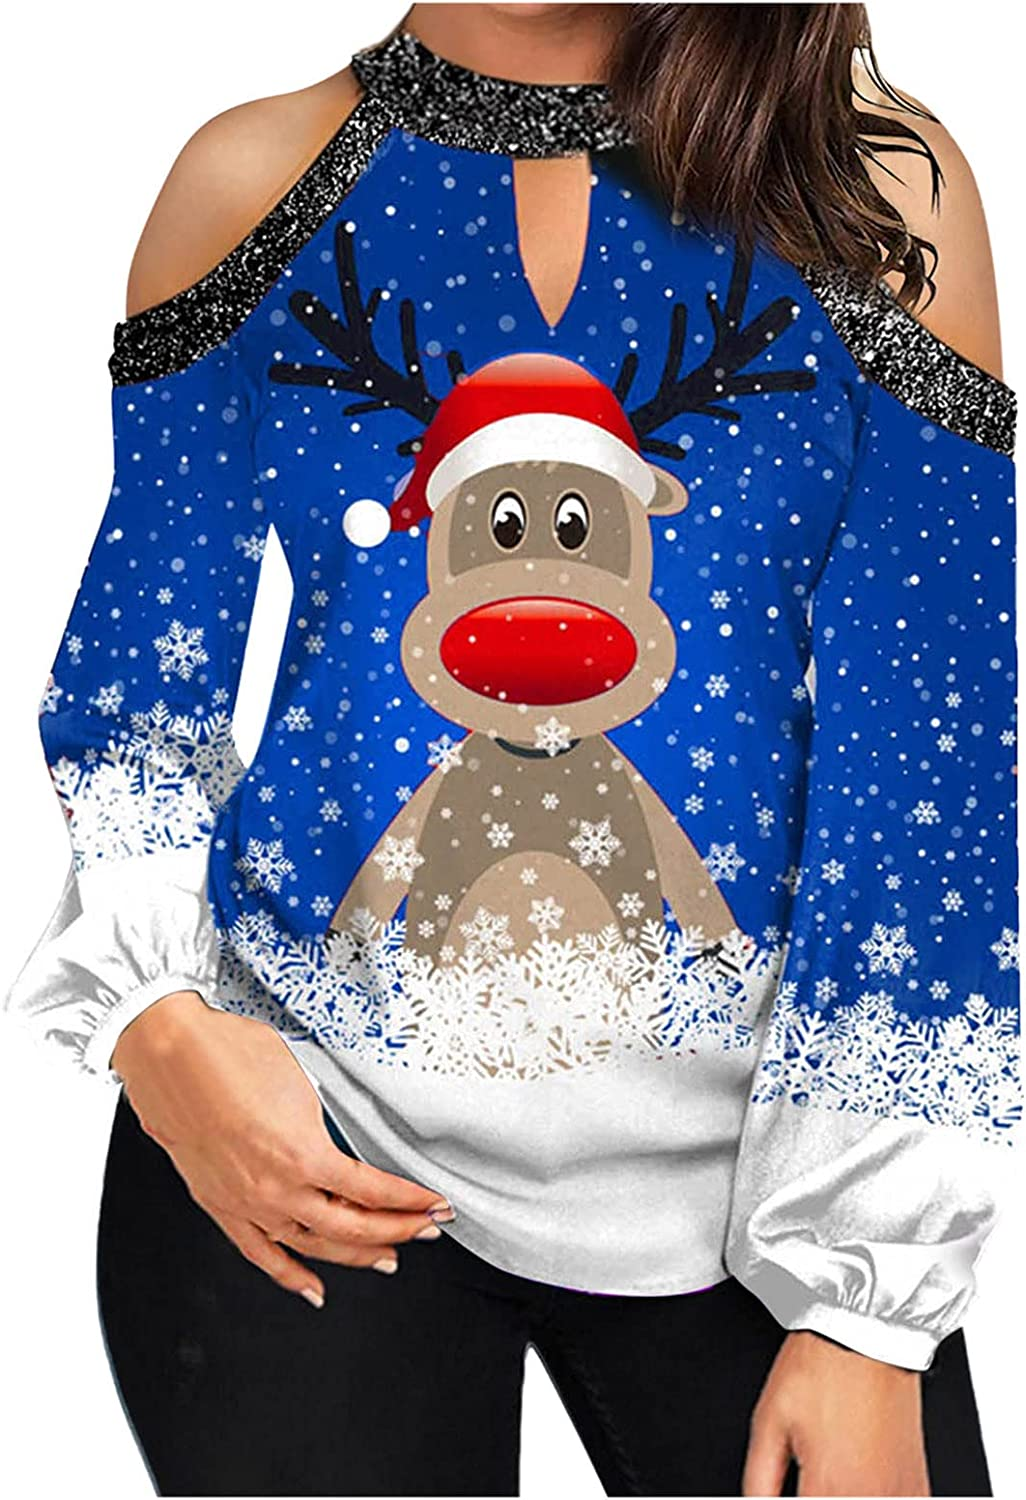 BCDlily Industry No. 1 Women Christmas Shirts Xmas Tops Graphi Shipping included Sleeve Cute Long